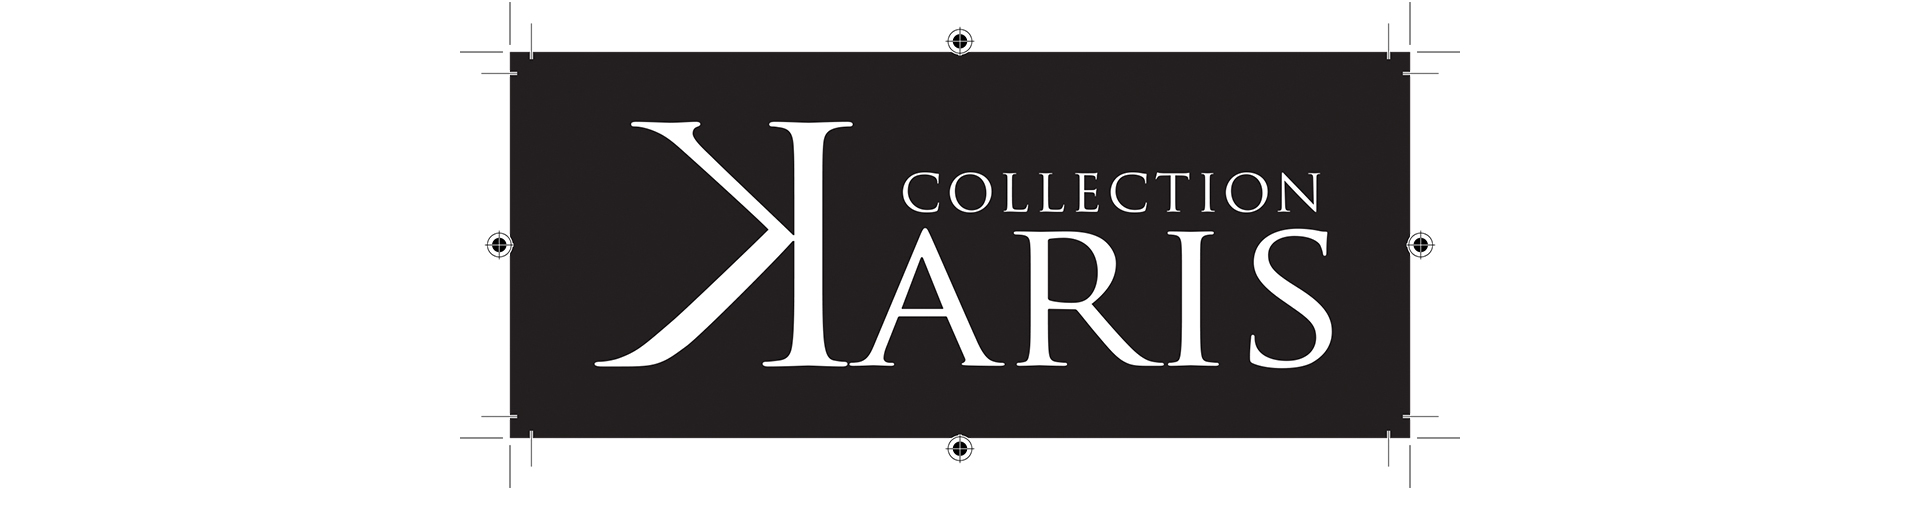 Karis Webb Label Design